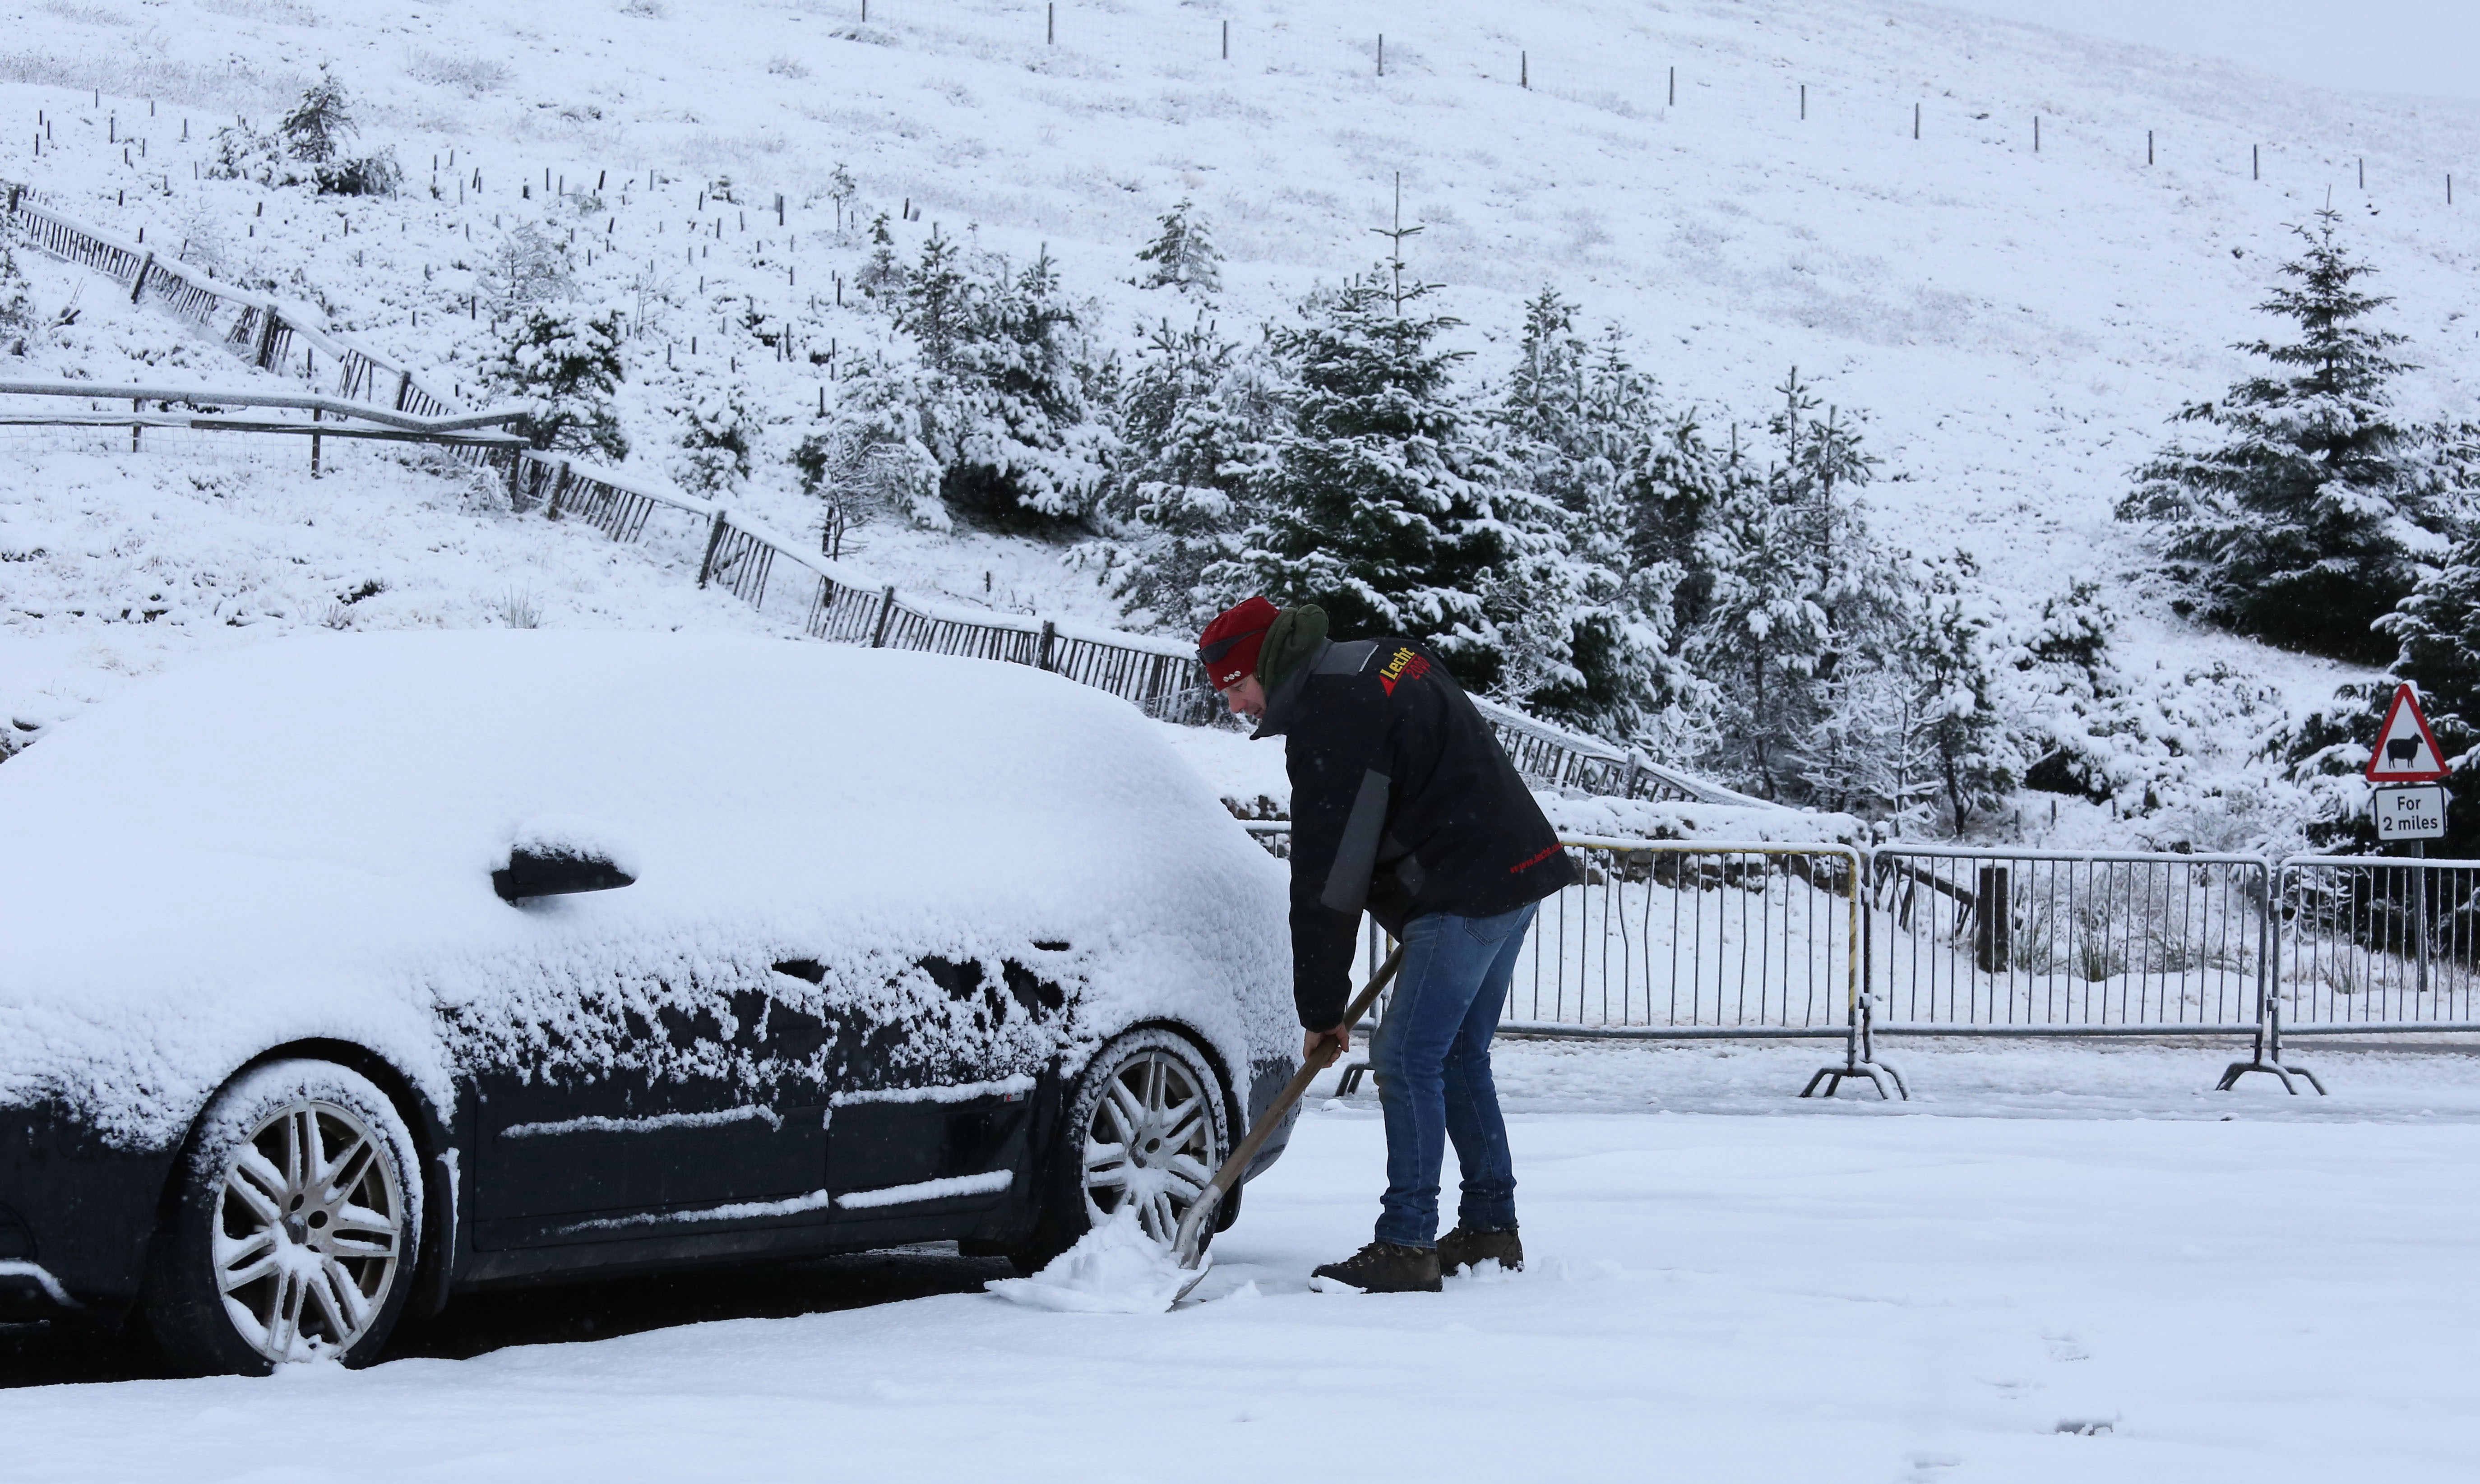 Commuter Neil Robb had to clear snow from around his car first thing this morning in the Scottish village of Tomintoul